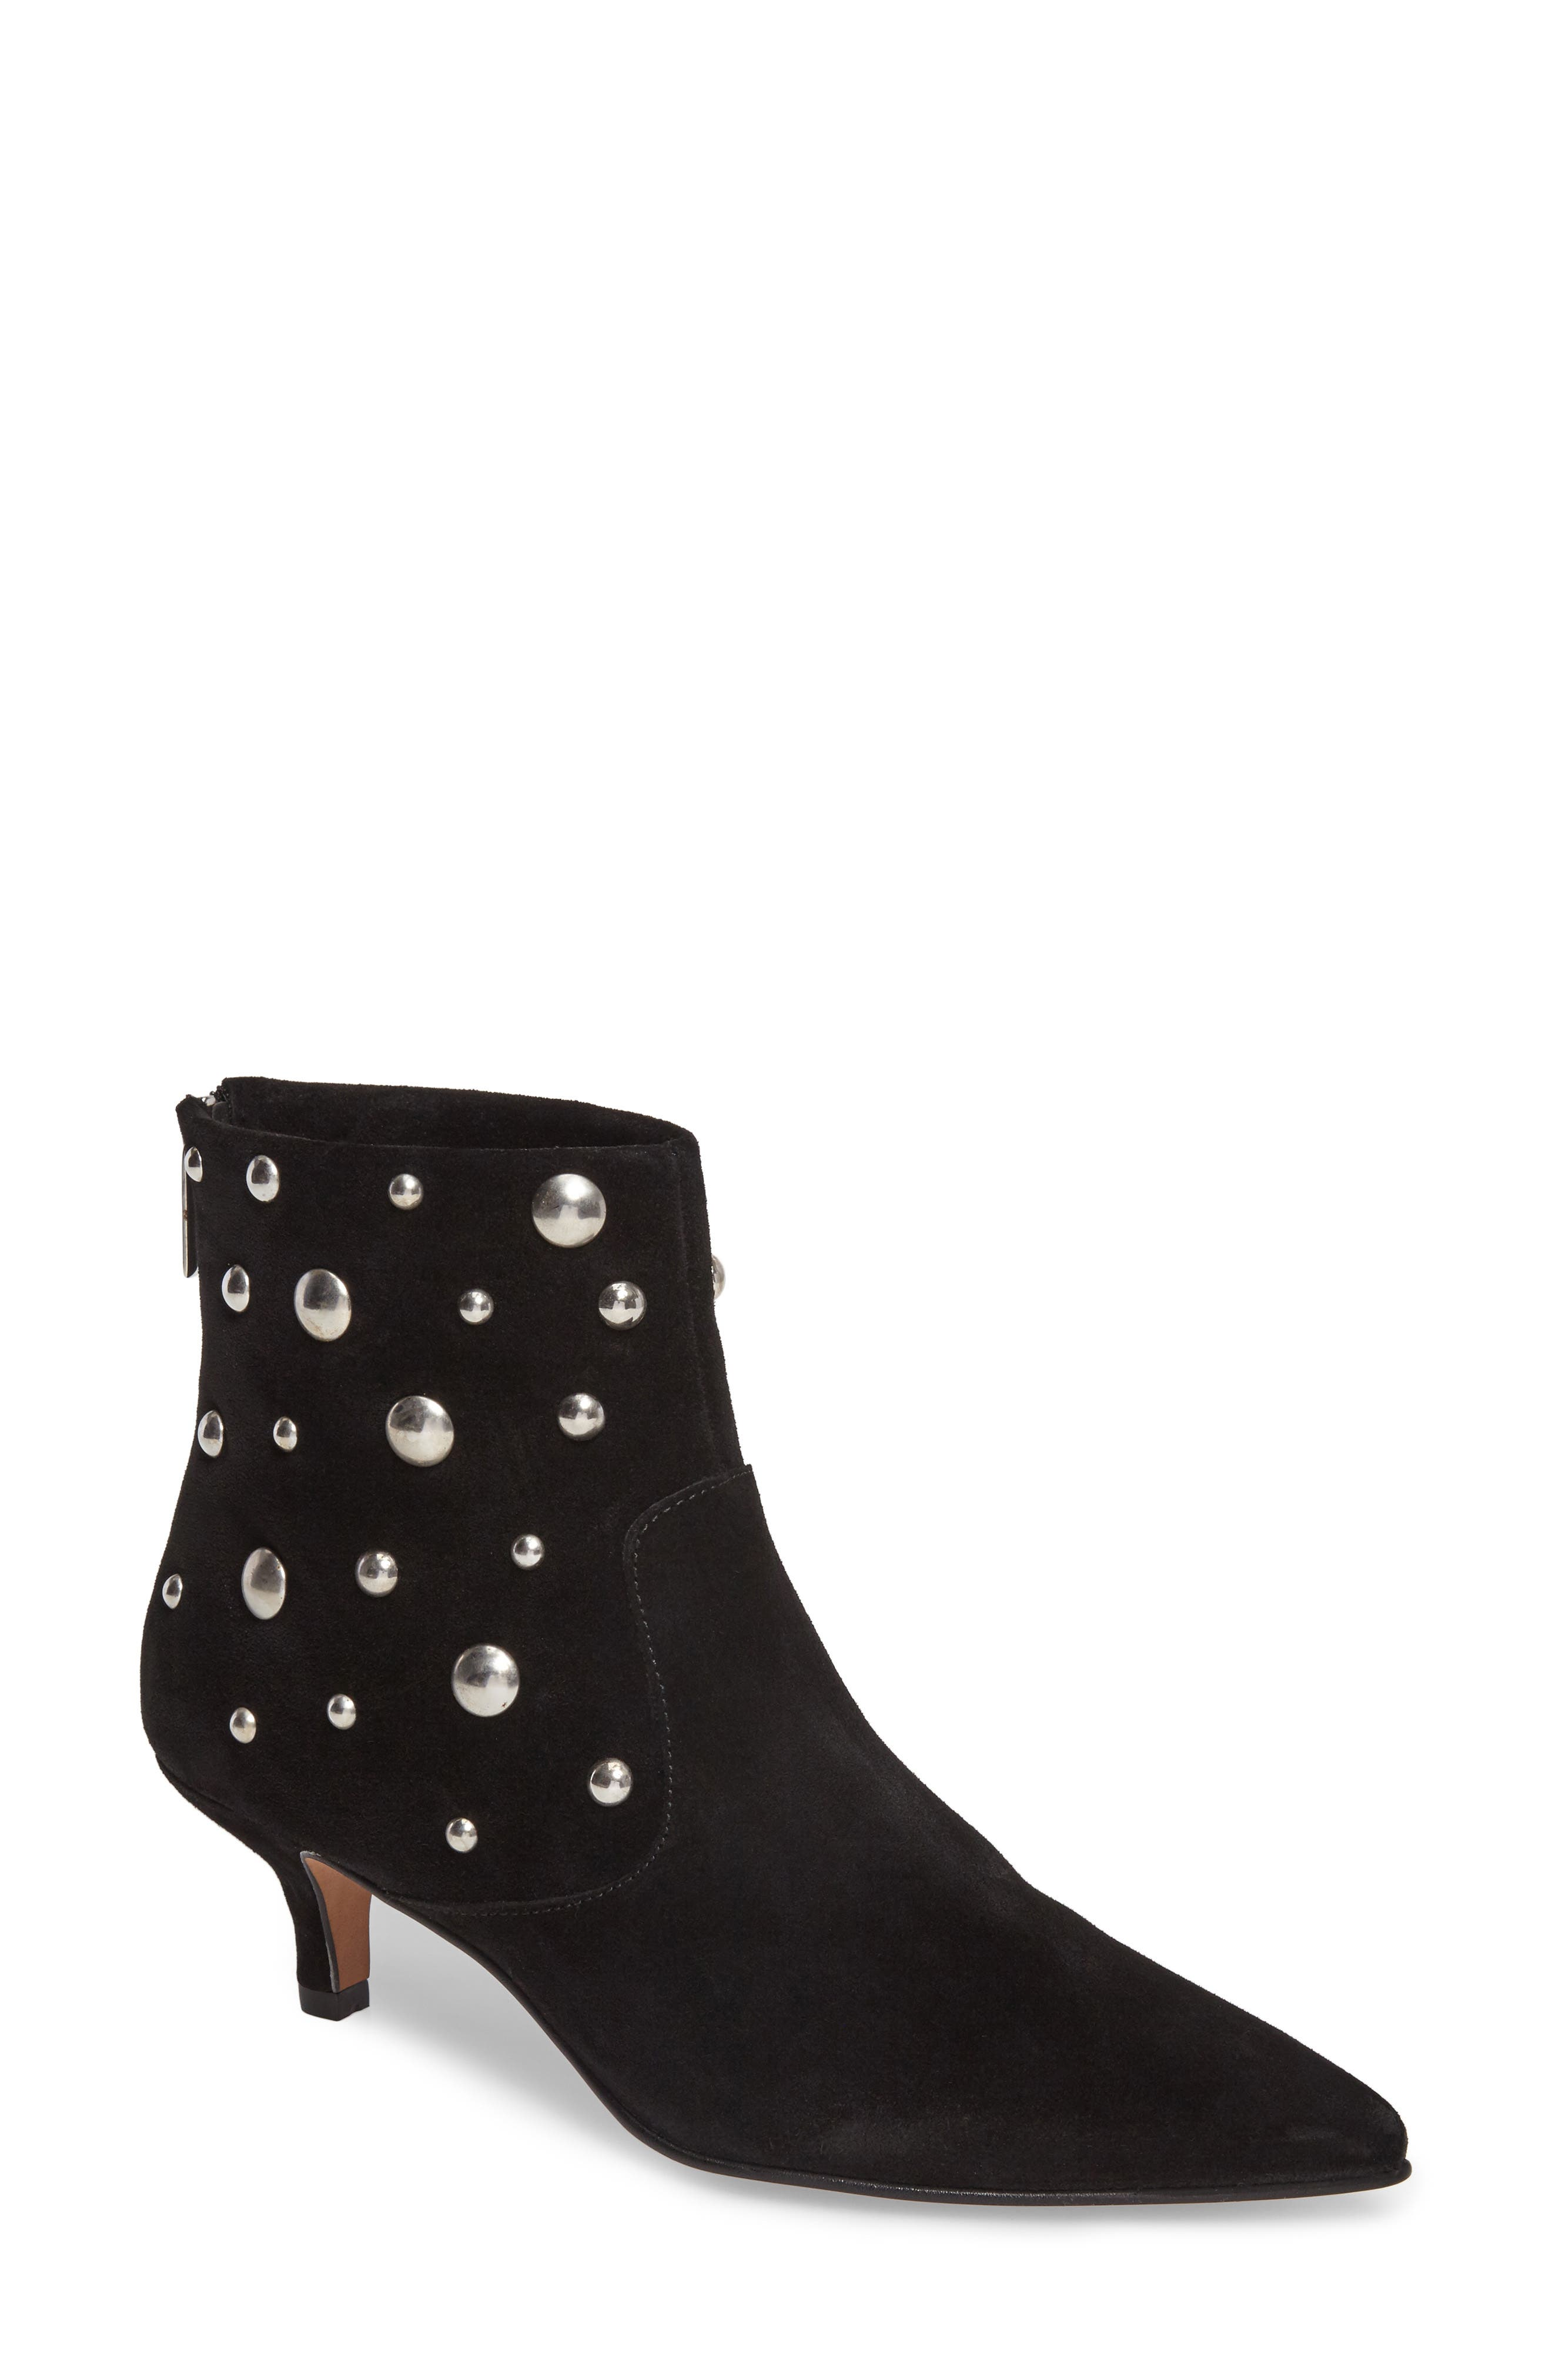 Alternate Image 1 Selected - Topshop Ascot Studded Pointy Toe Bootie (Women)